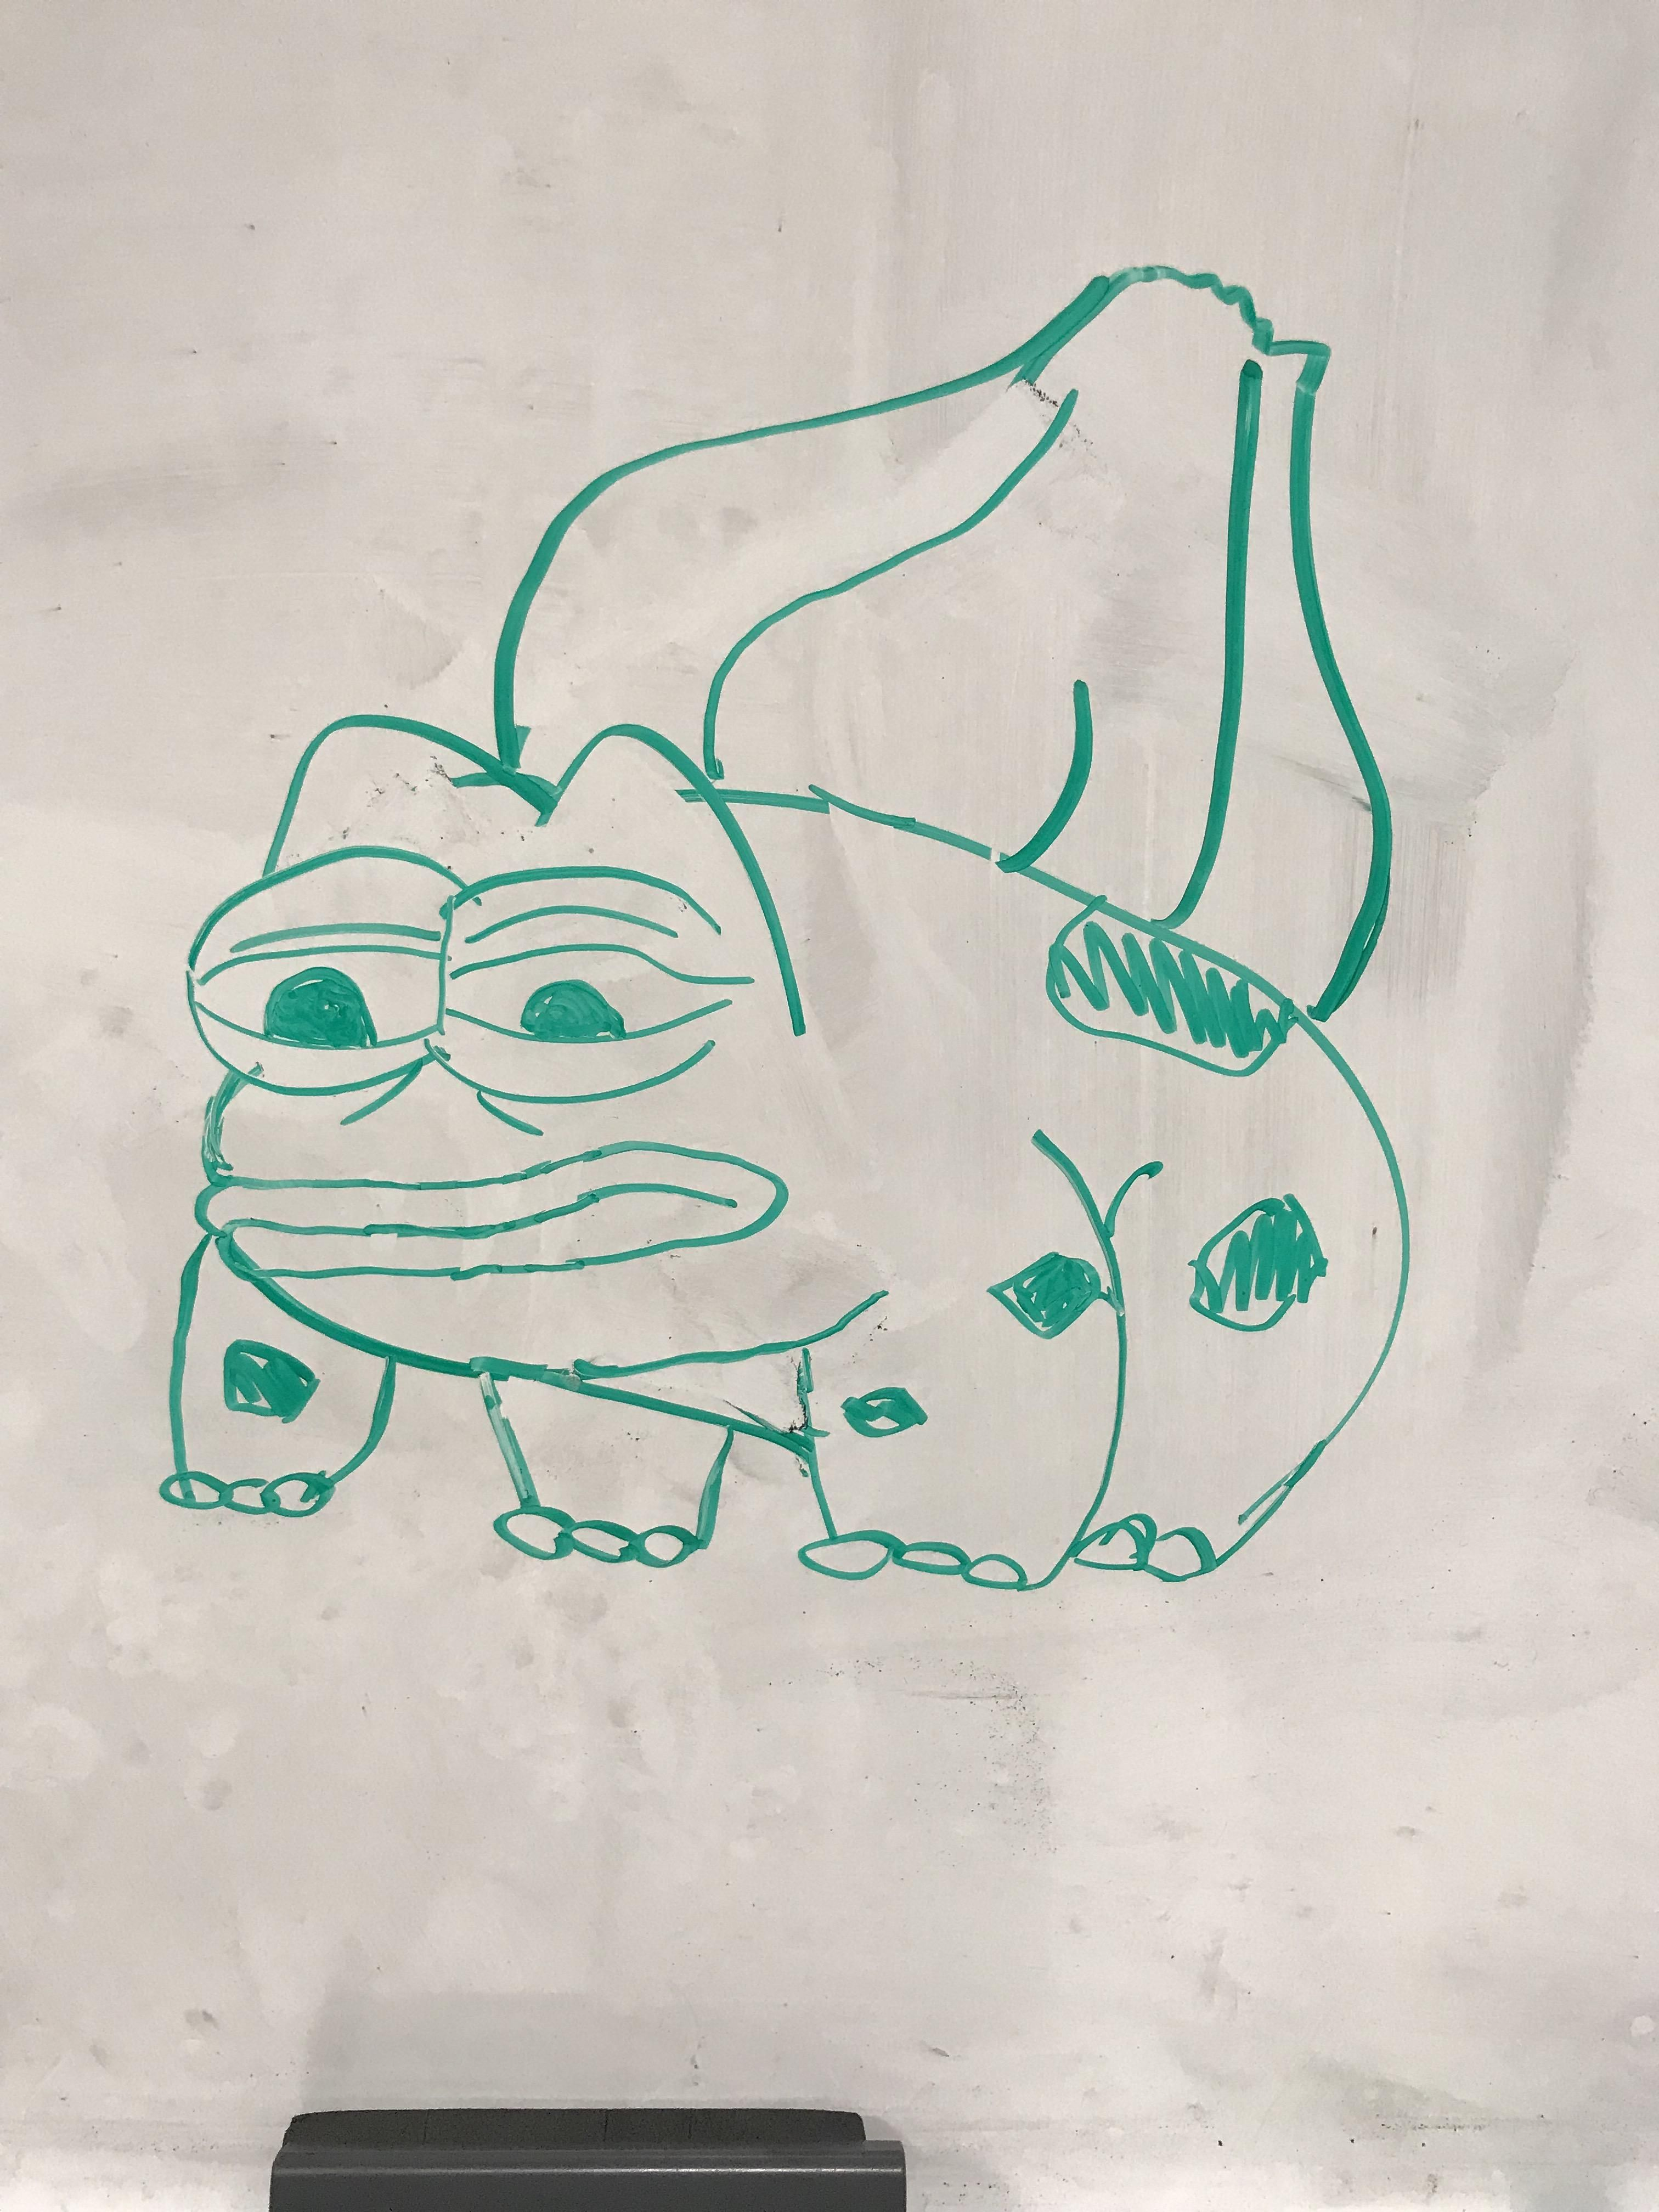 When The Teacher Says You Cant Draw On The White Board Drawing Meme White Board Drawings Whiteboard Art